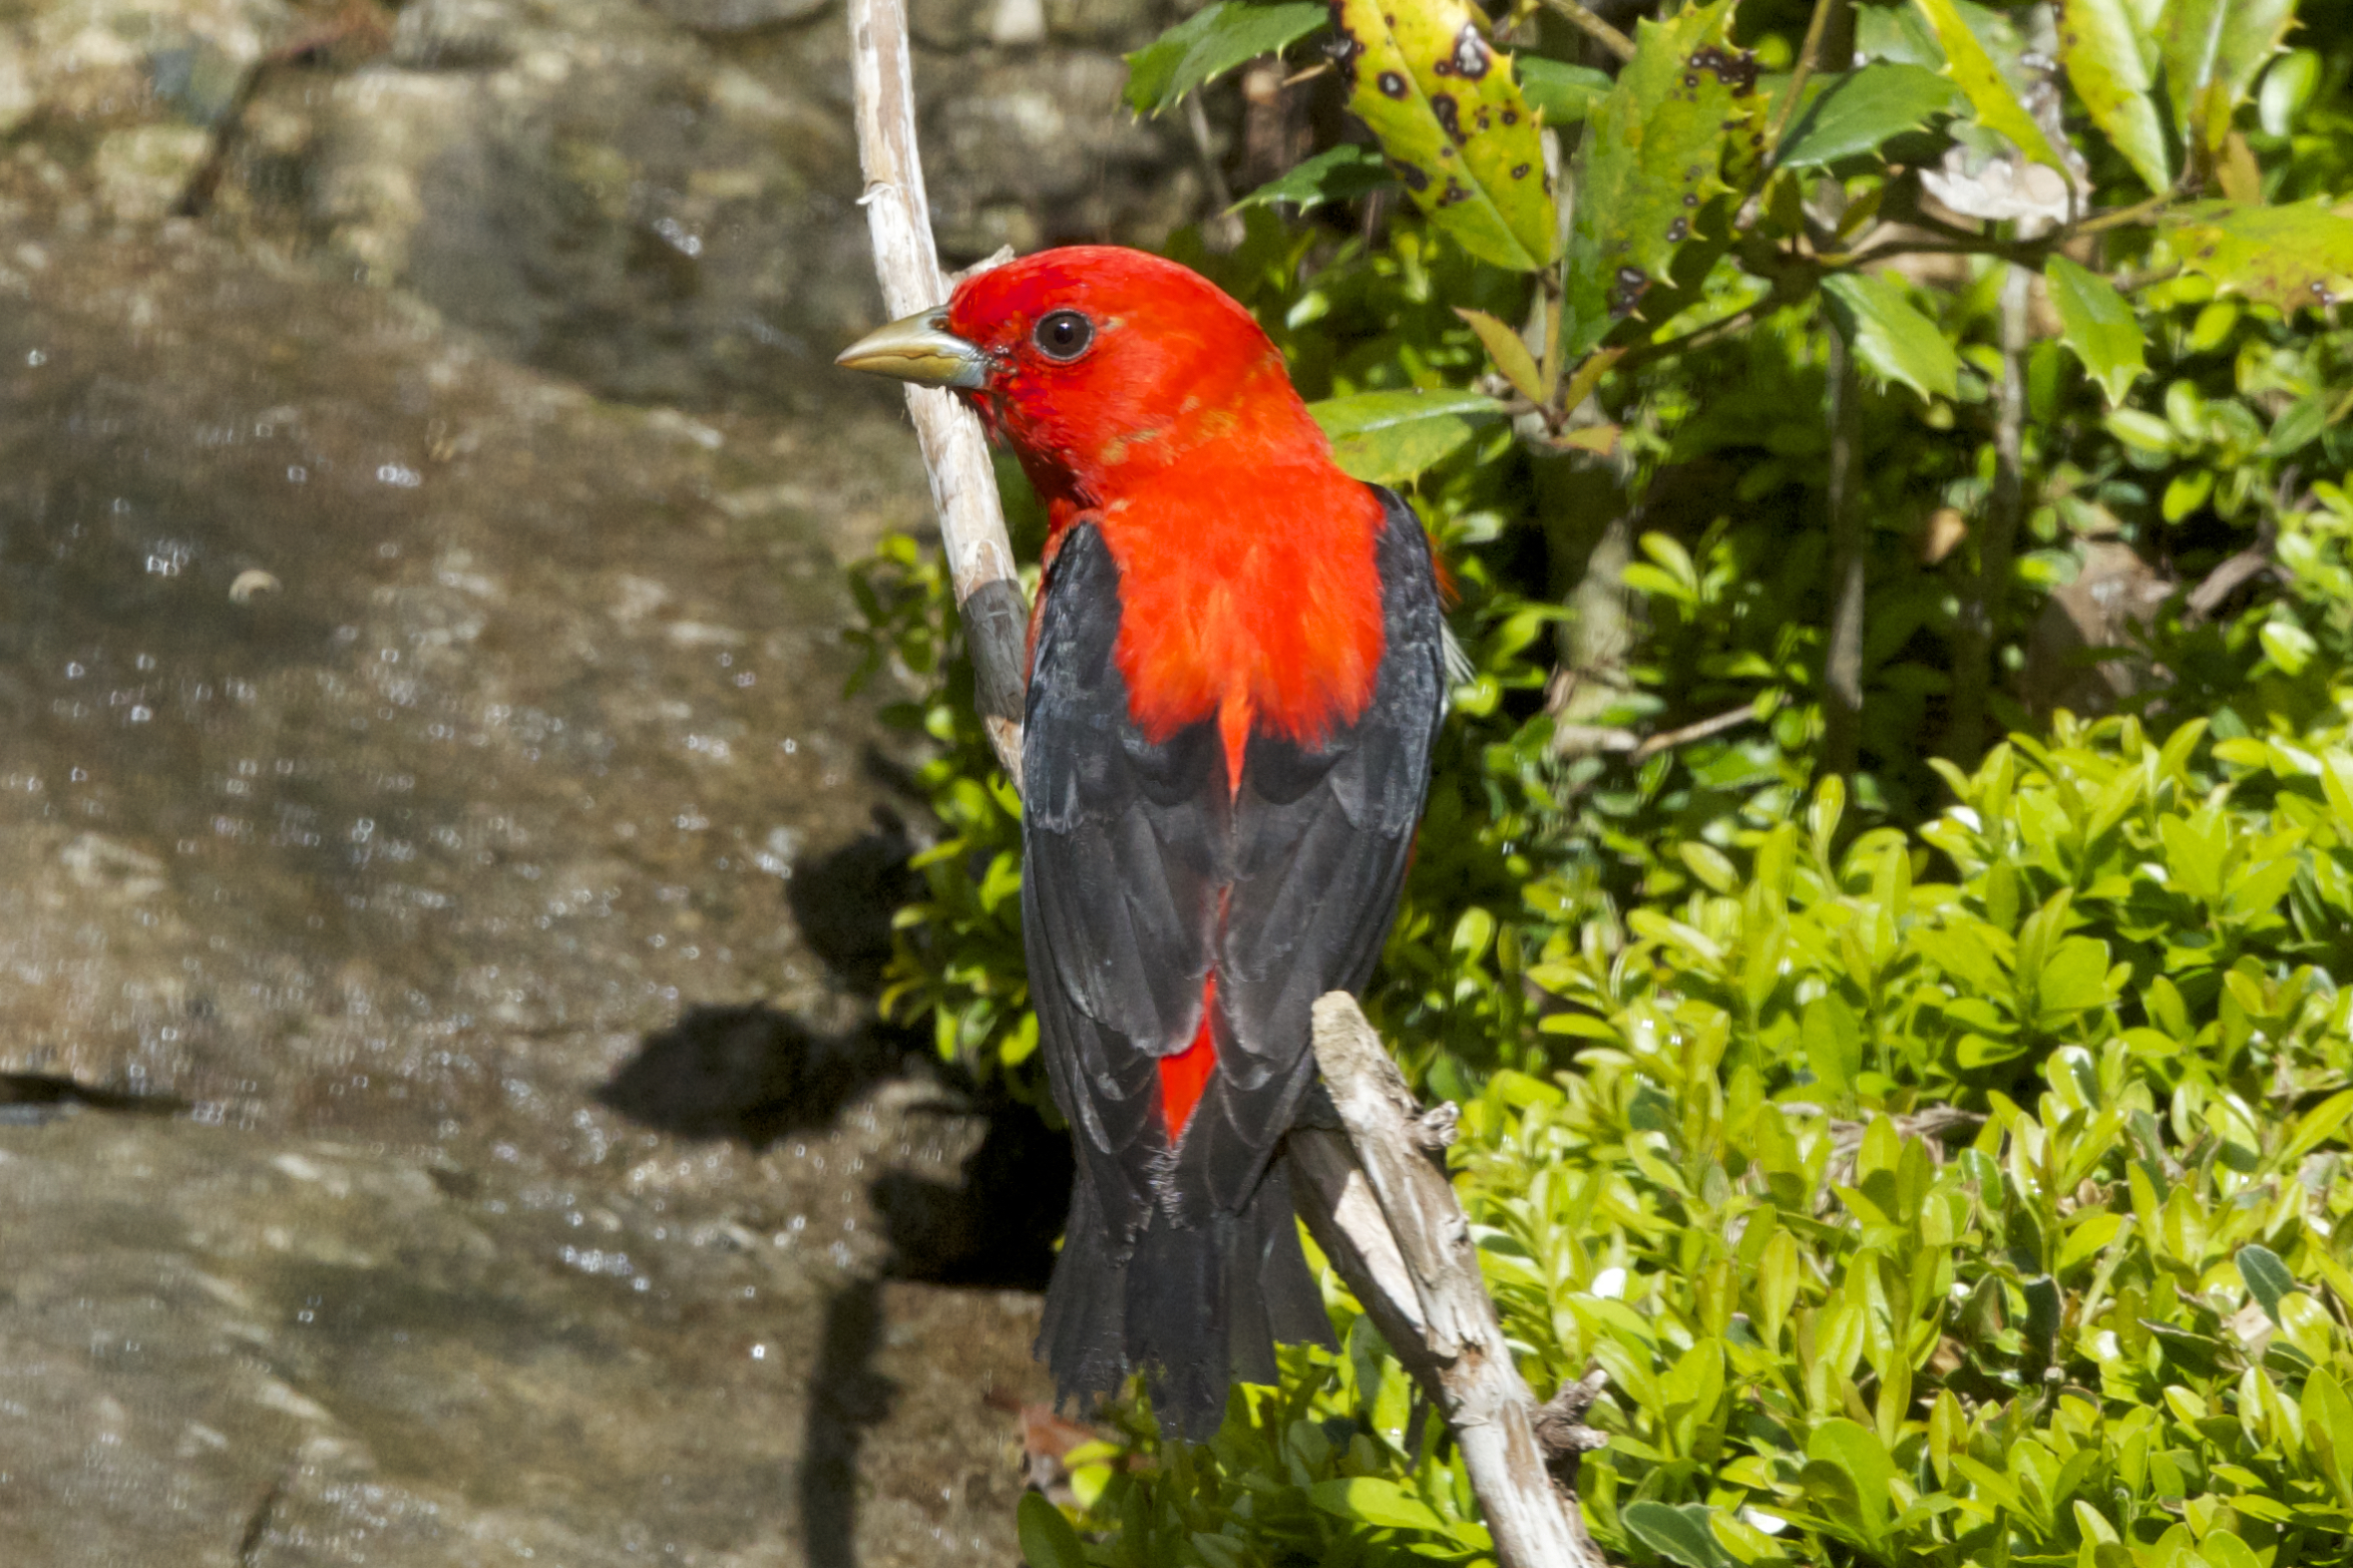 Scarlet Tanager-male before molting process. (Breeding Plumage)